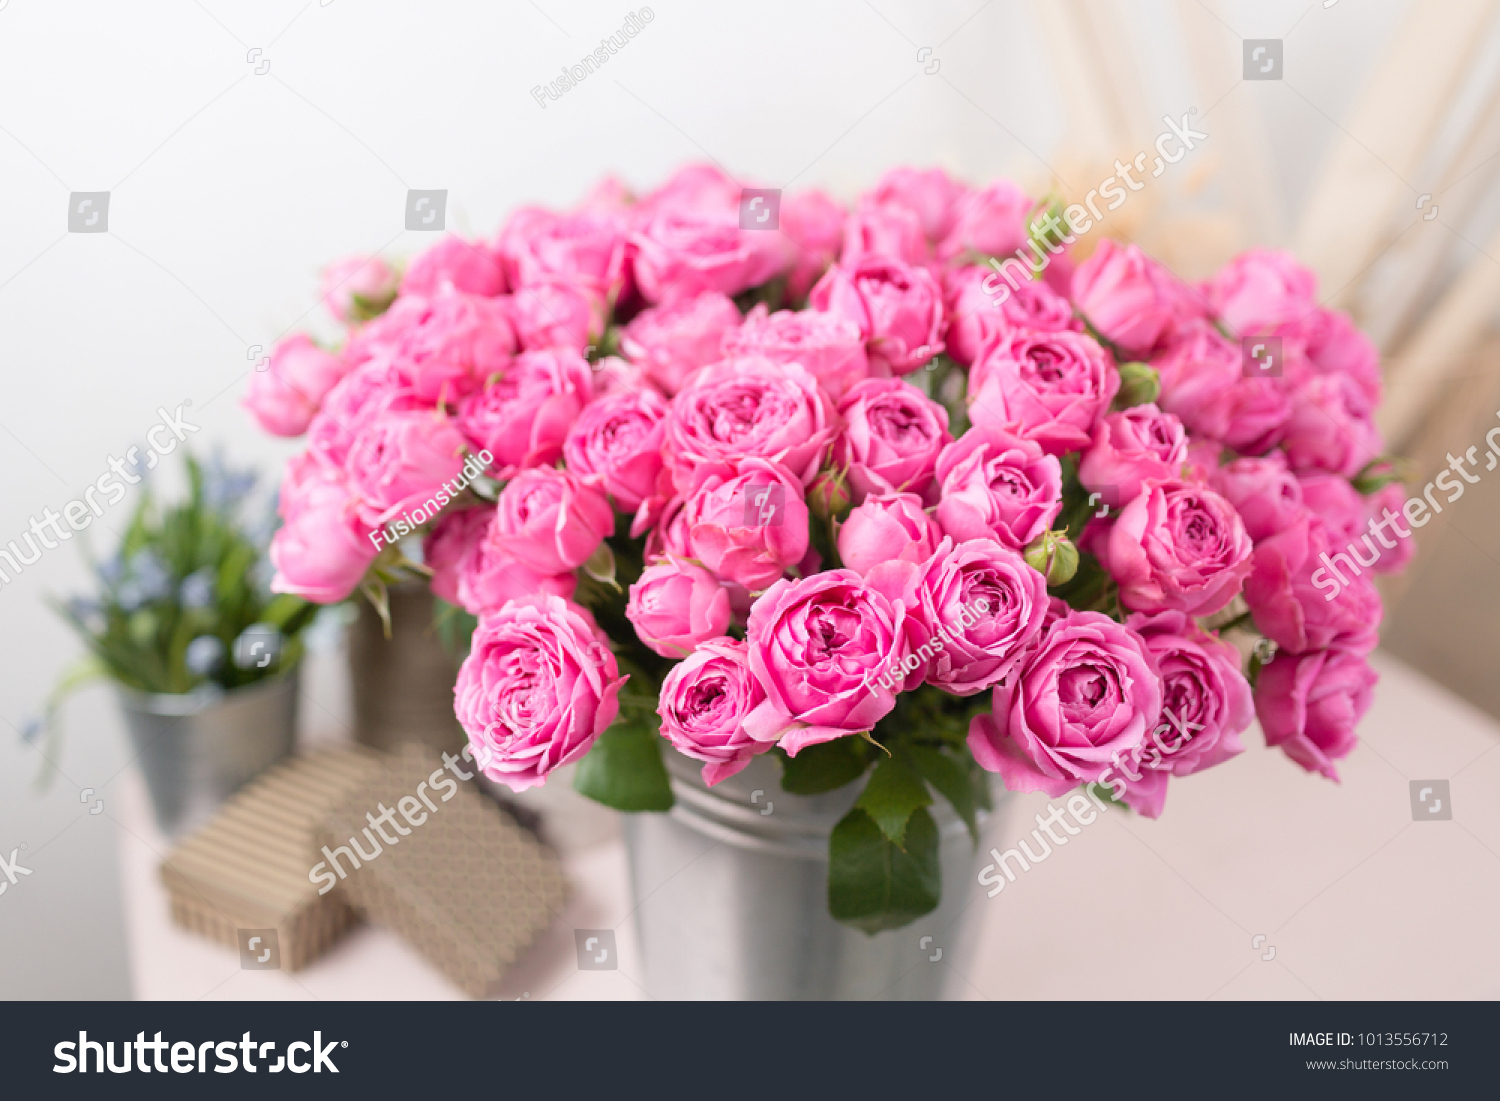 Rose misty bubbles bouquet flowers of pink roses in metal vase id 1013556712 izmirmasajfo